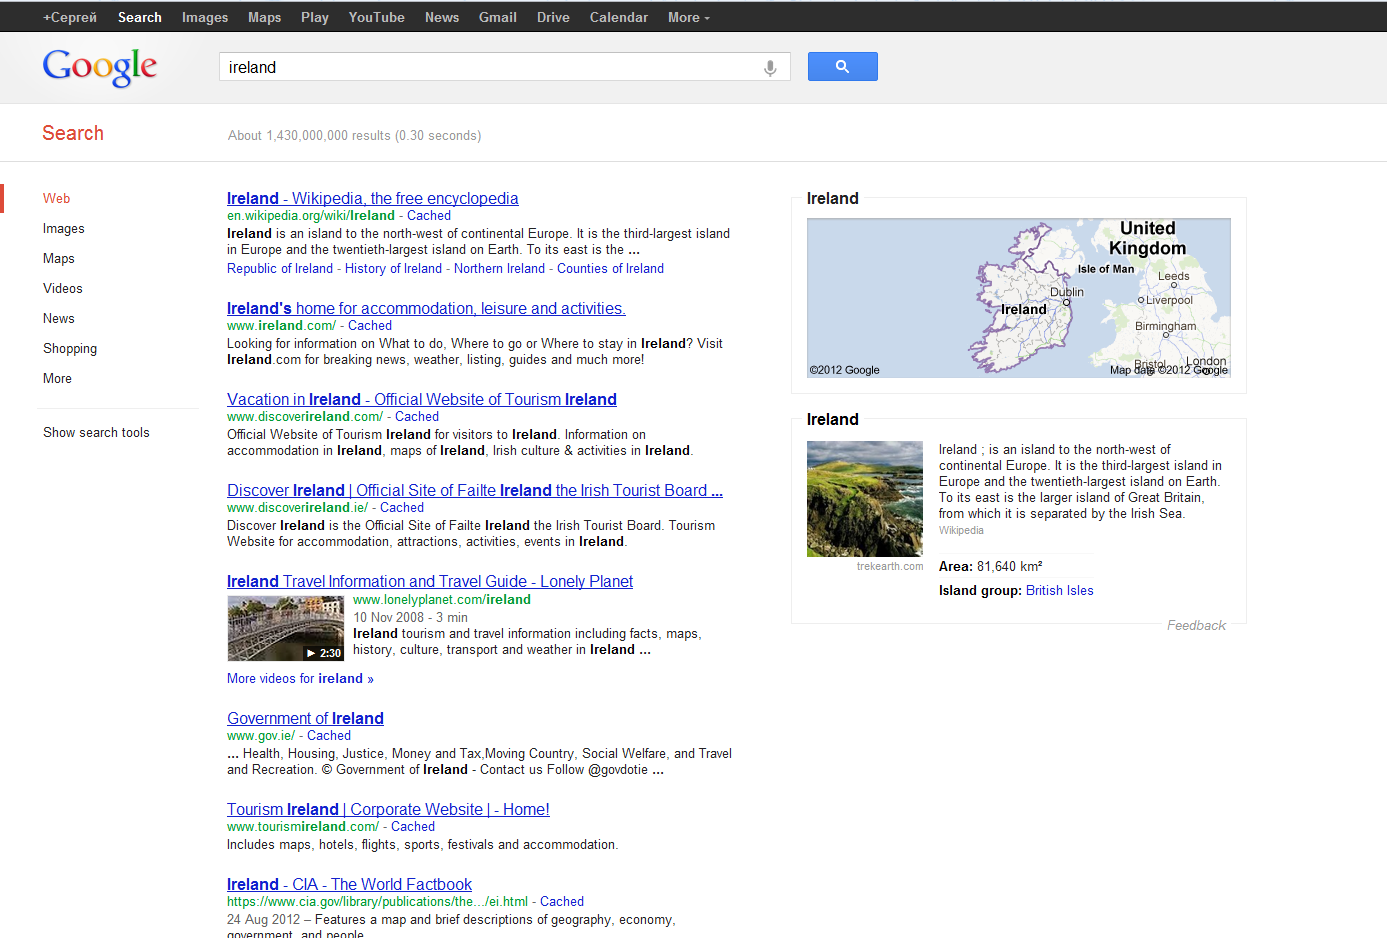 google search vision (country)